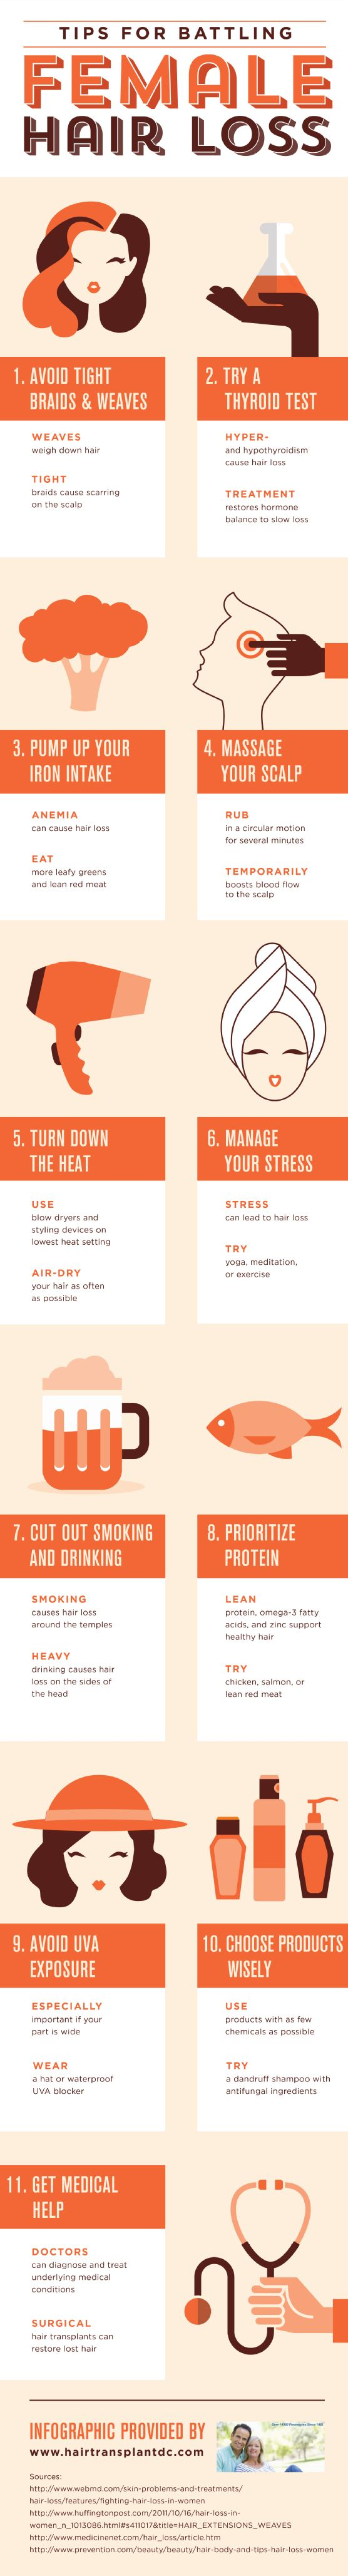 Heat damages hair, potentially leading to hair loss. Use blow dryers and styling devices on the lowest heat settings and air-dry your hair as often as possible. Find other hair-saving tips by viewing this infographic about female hair loss causes.